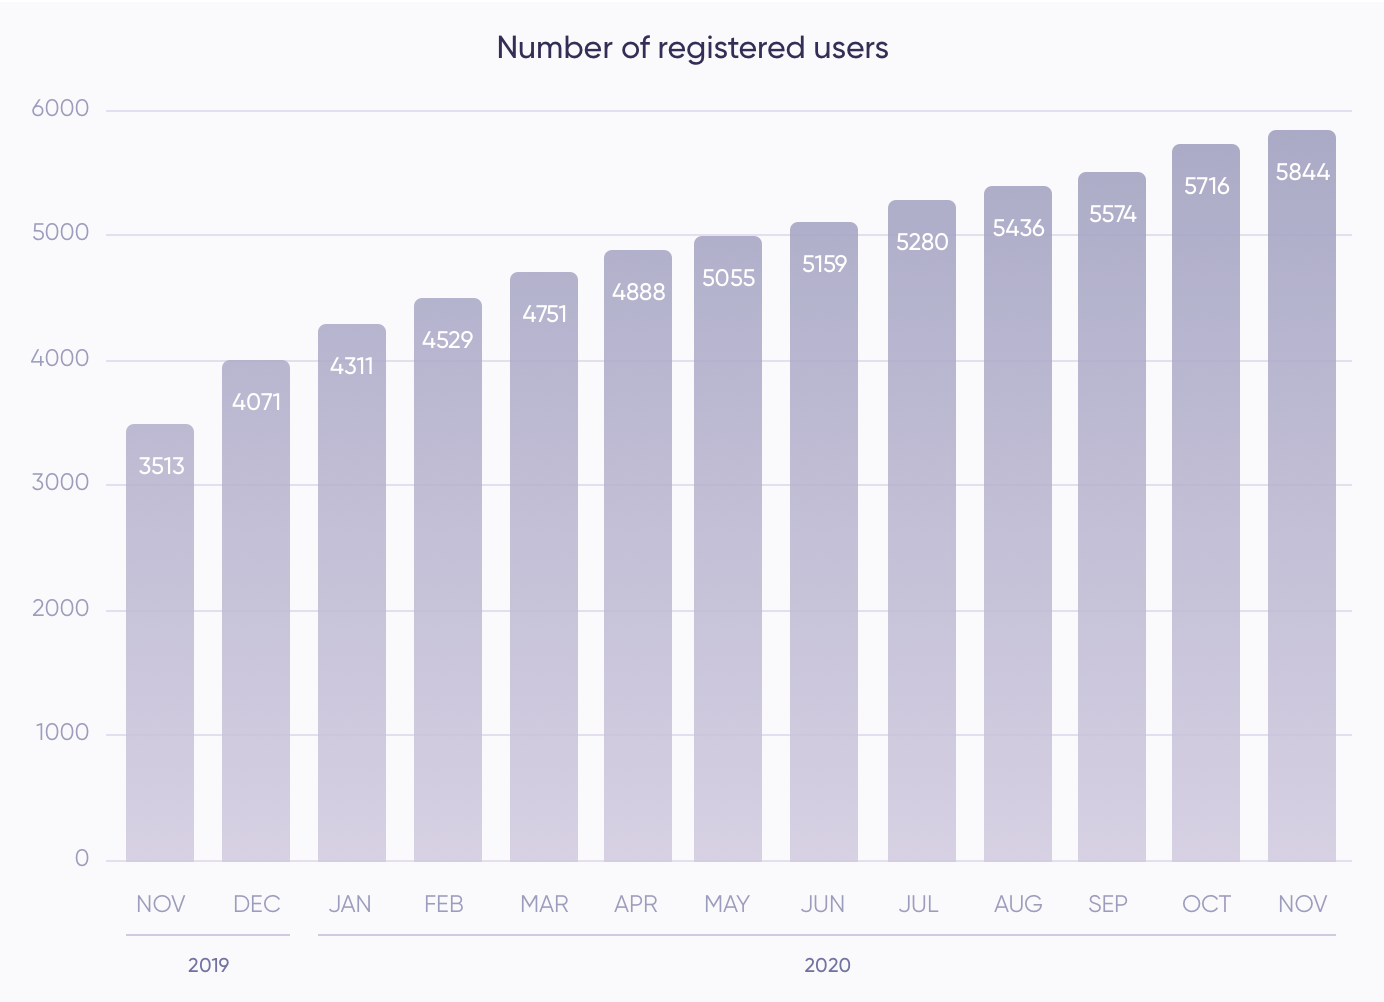 Number of users